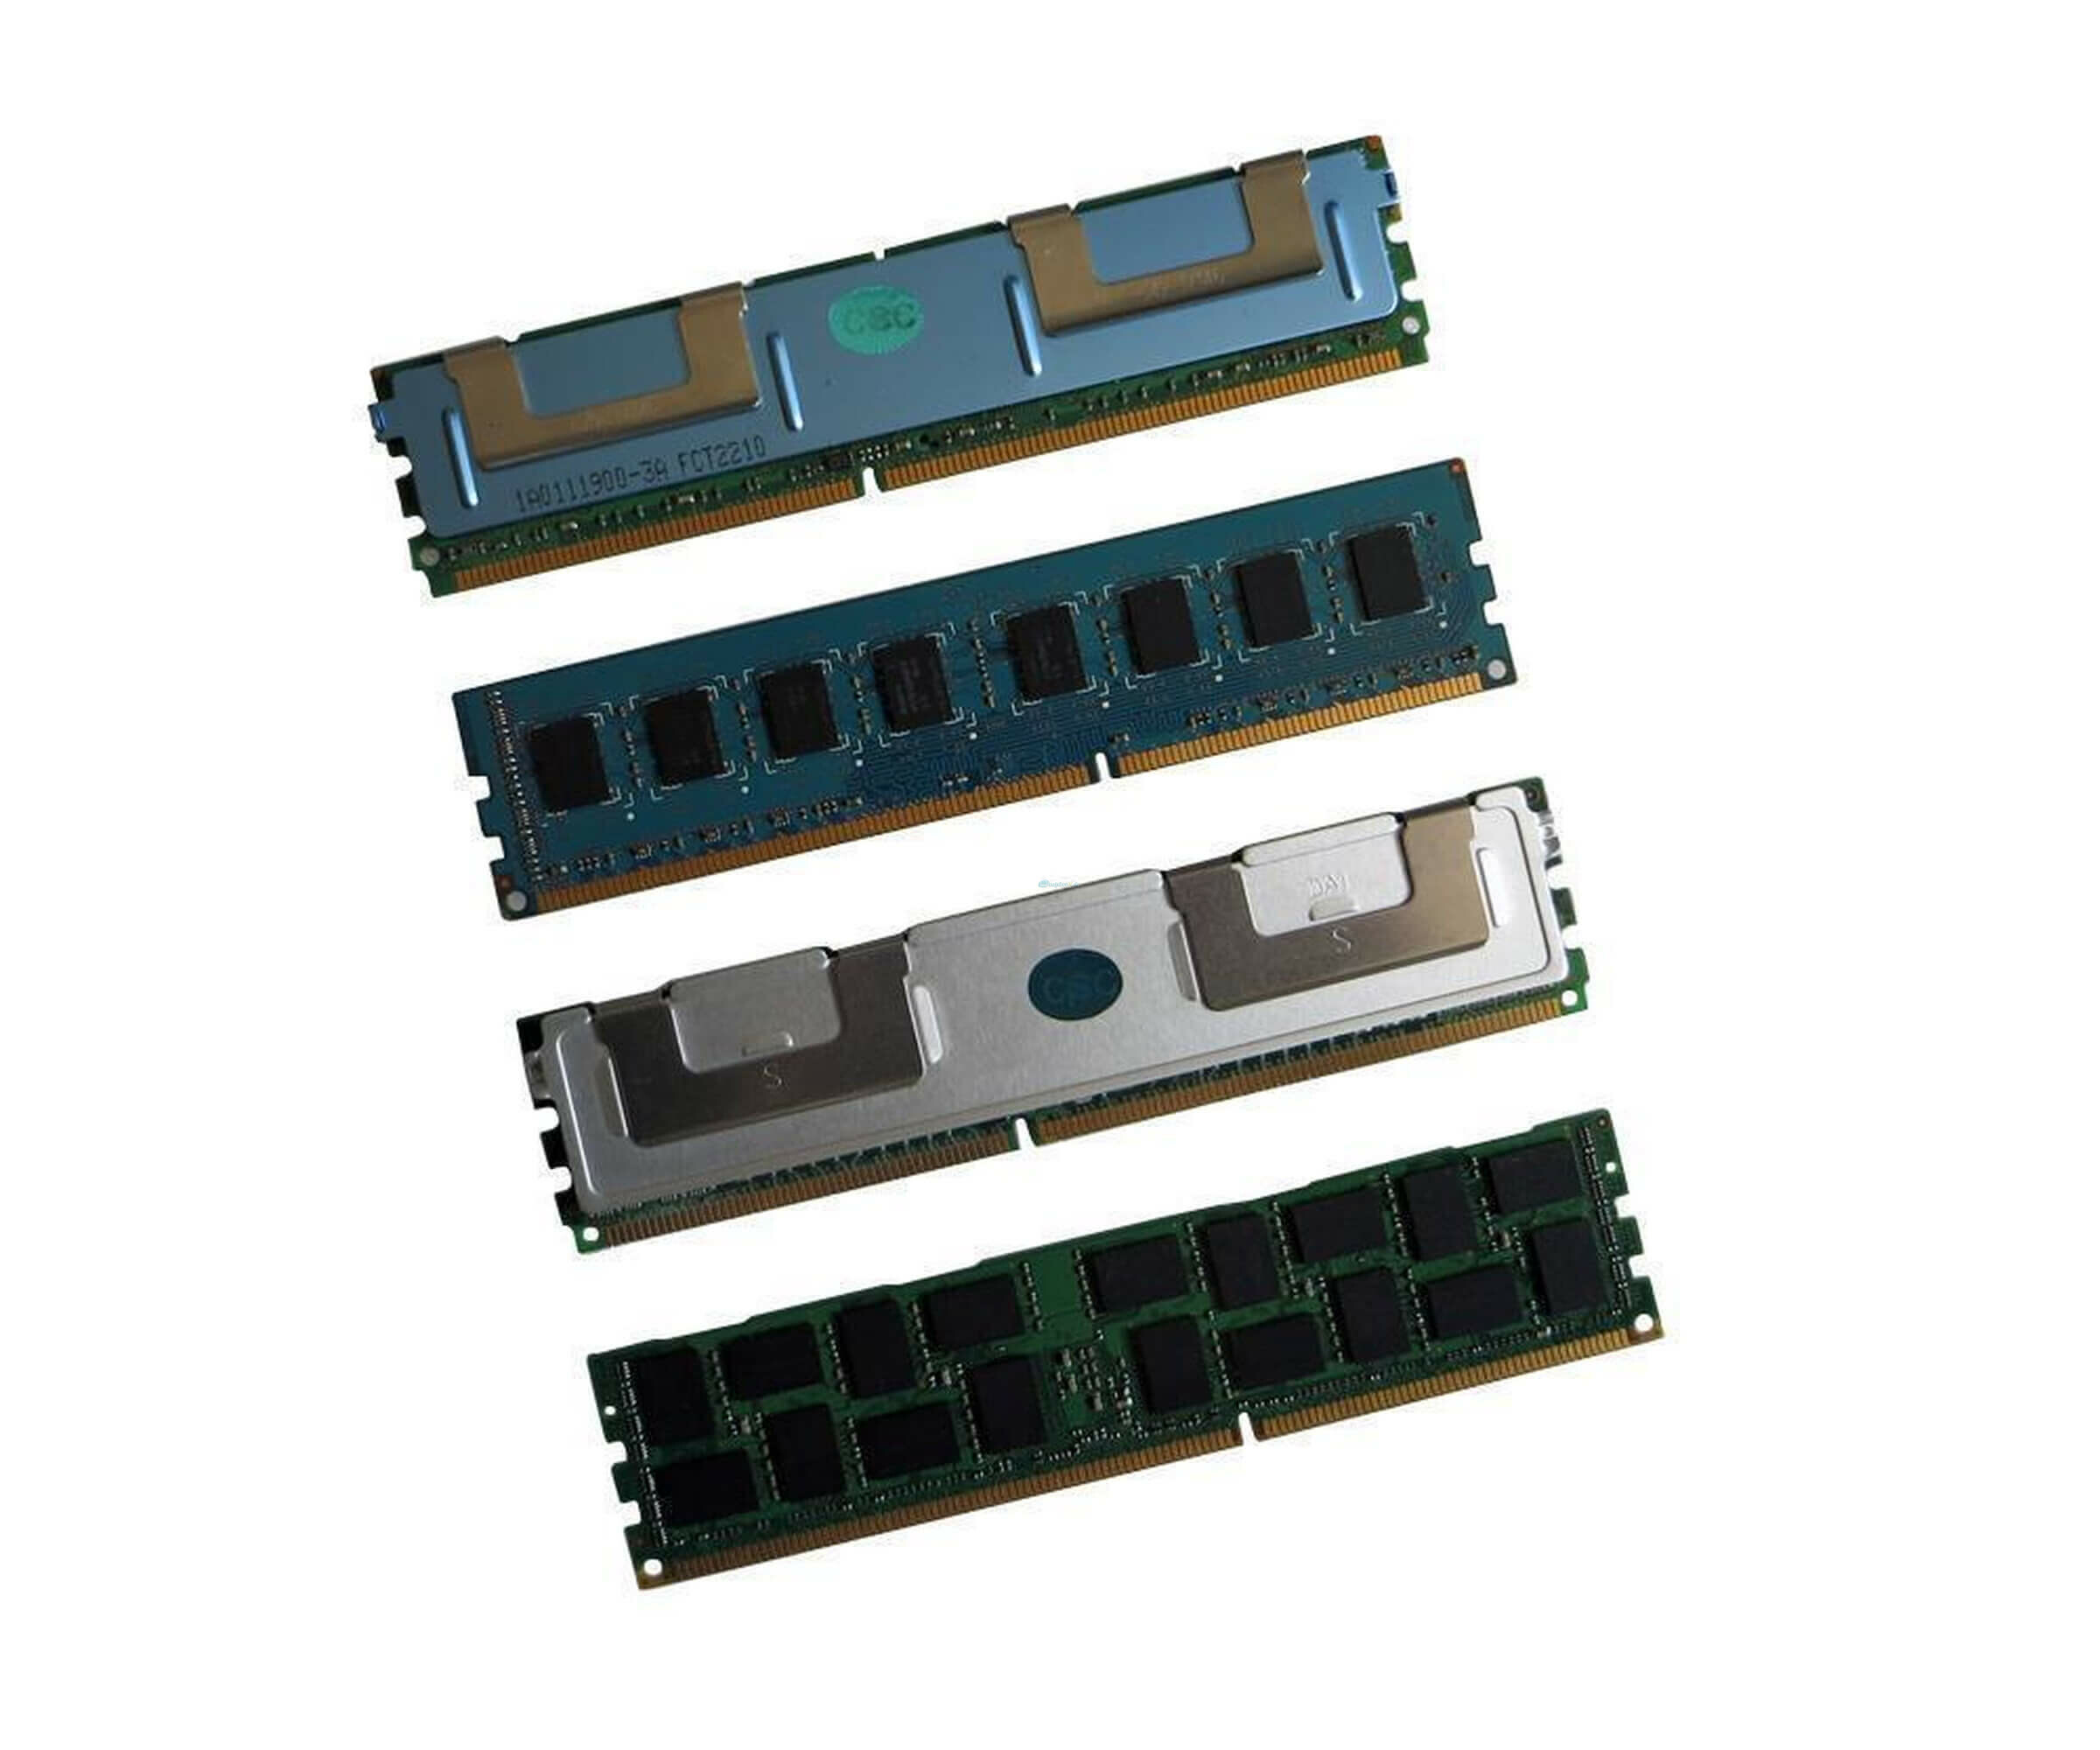 Sun 370-4939 Memory - 512 MB - PC-2100 - DIMM 232-PIN - DDR SDRAM